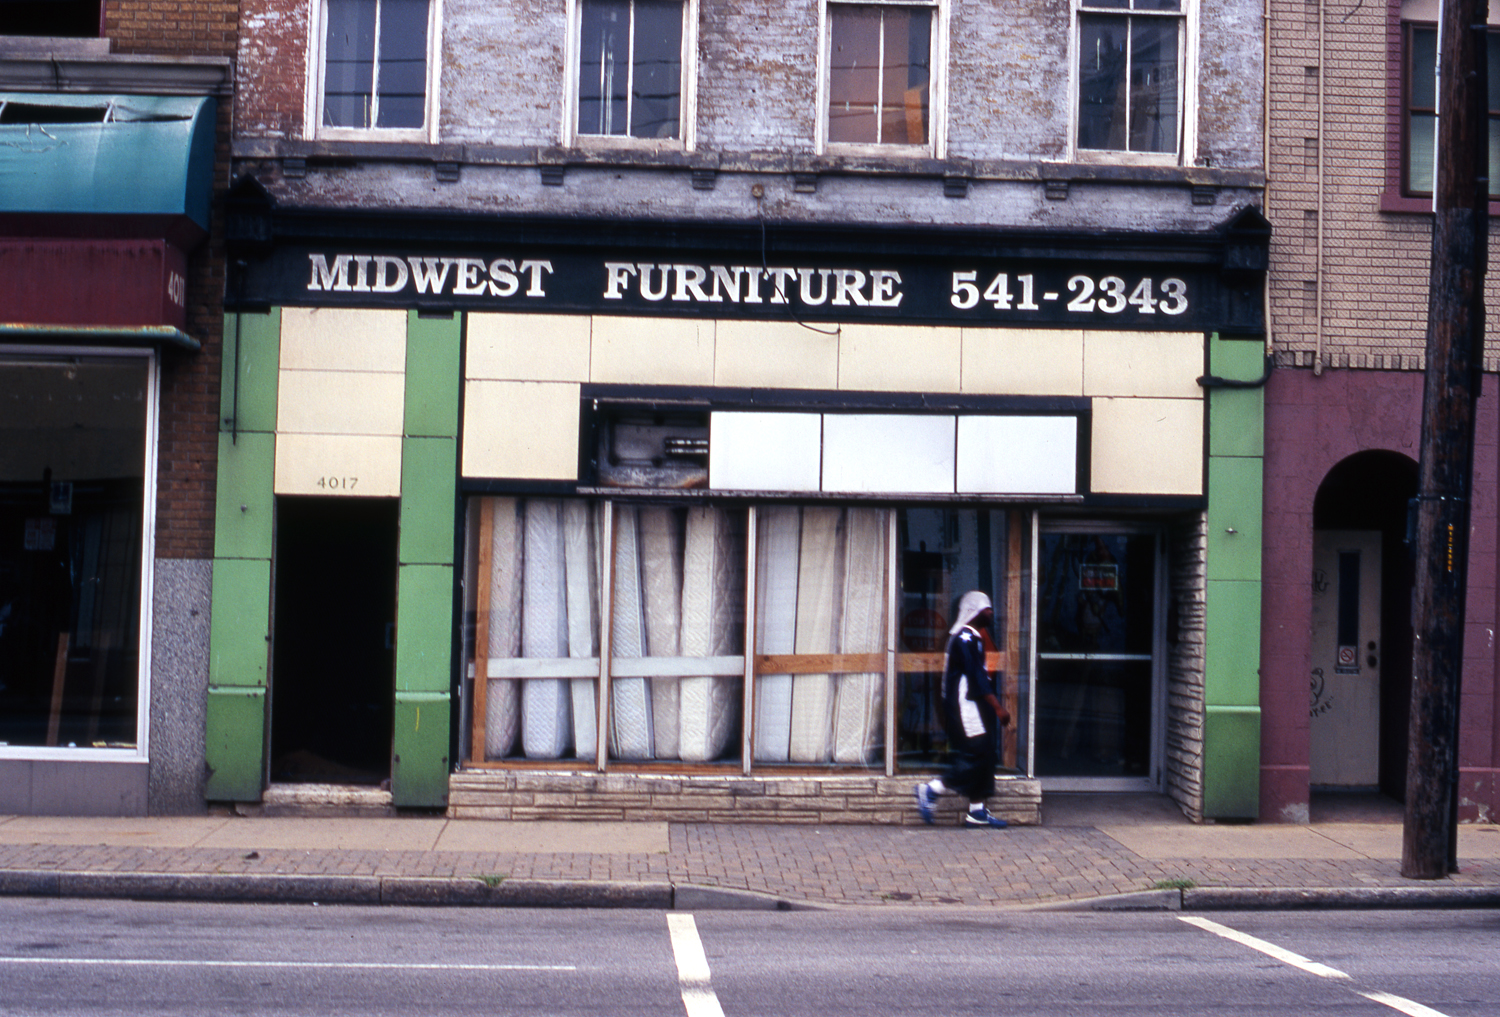 Midwest Furniture